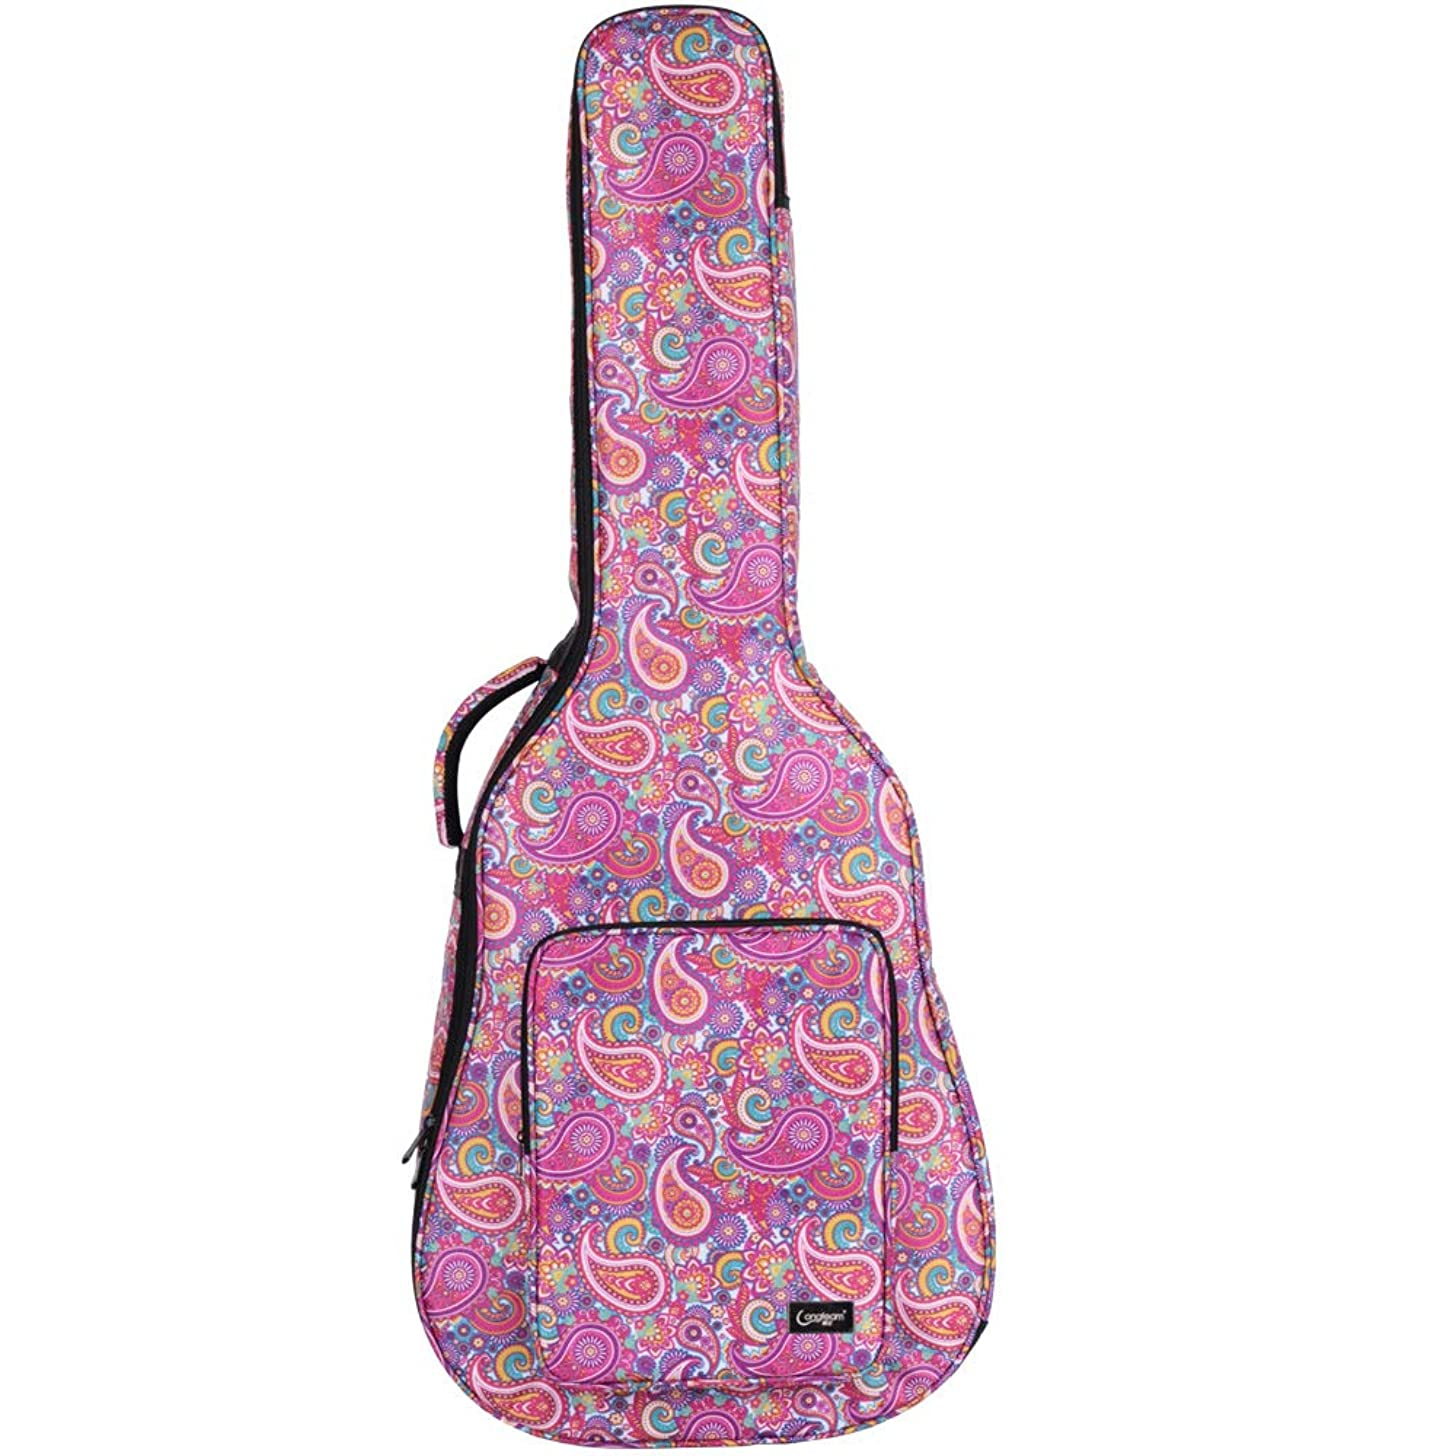 Acoustic Guitar Bags & Cases 40/41 inch Guitar Case (Red, Blue and Black Multicolor Camouflage)